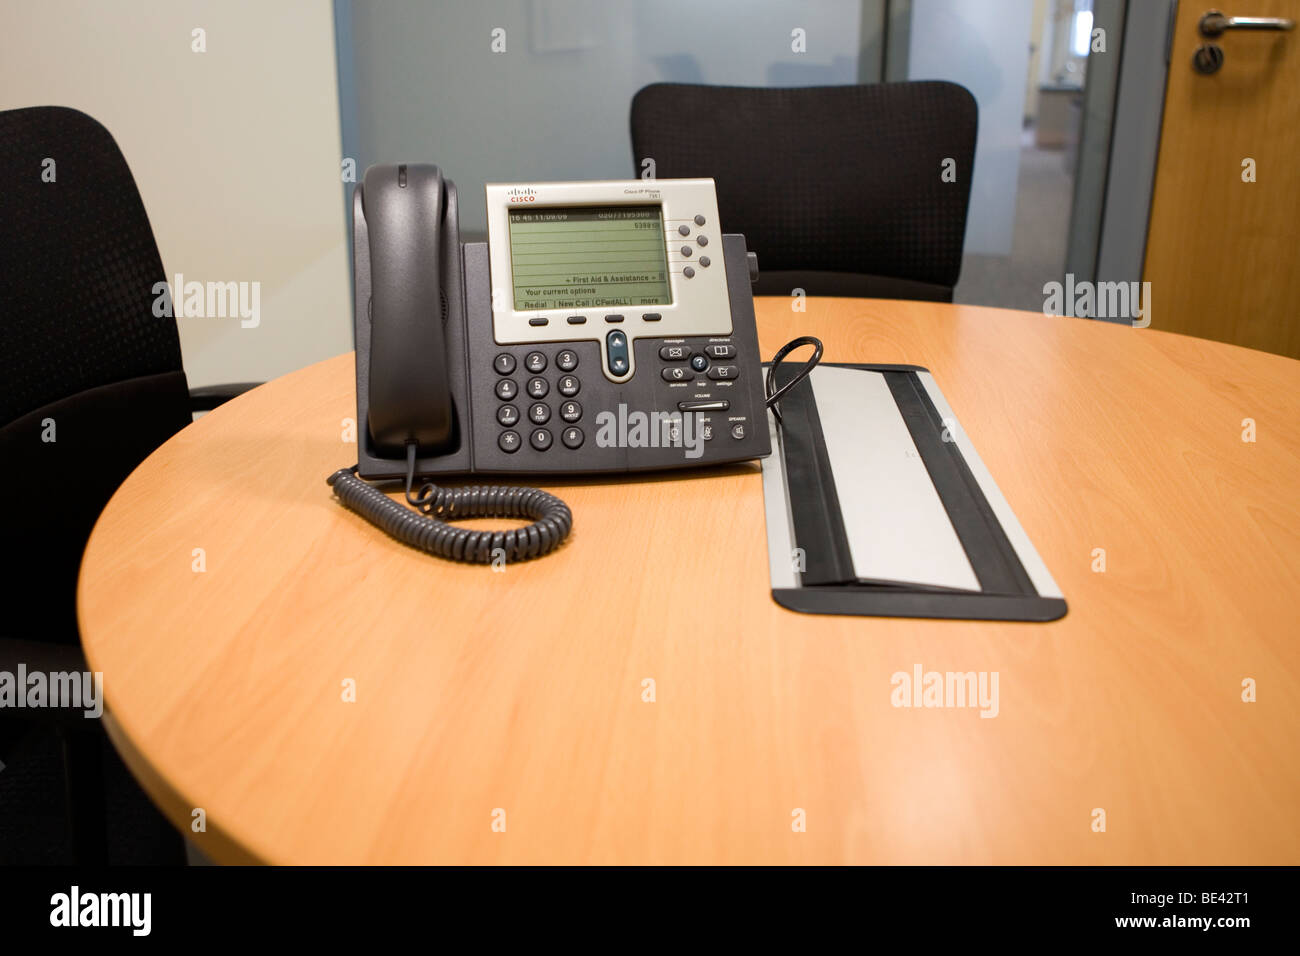 Cisco IP phone on the desk in a meeting room Stock Photo: 25905601